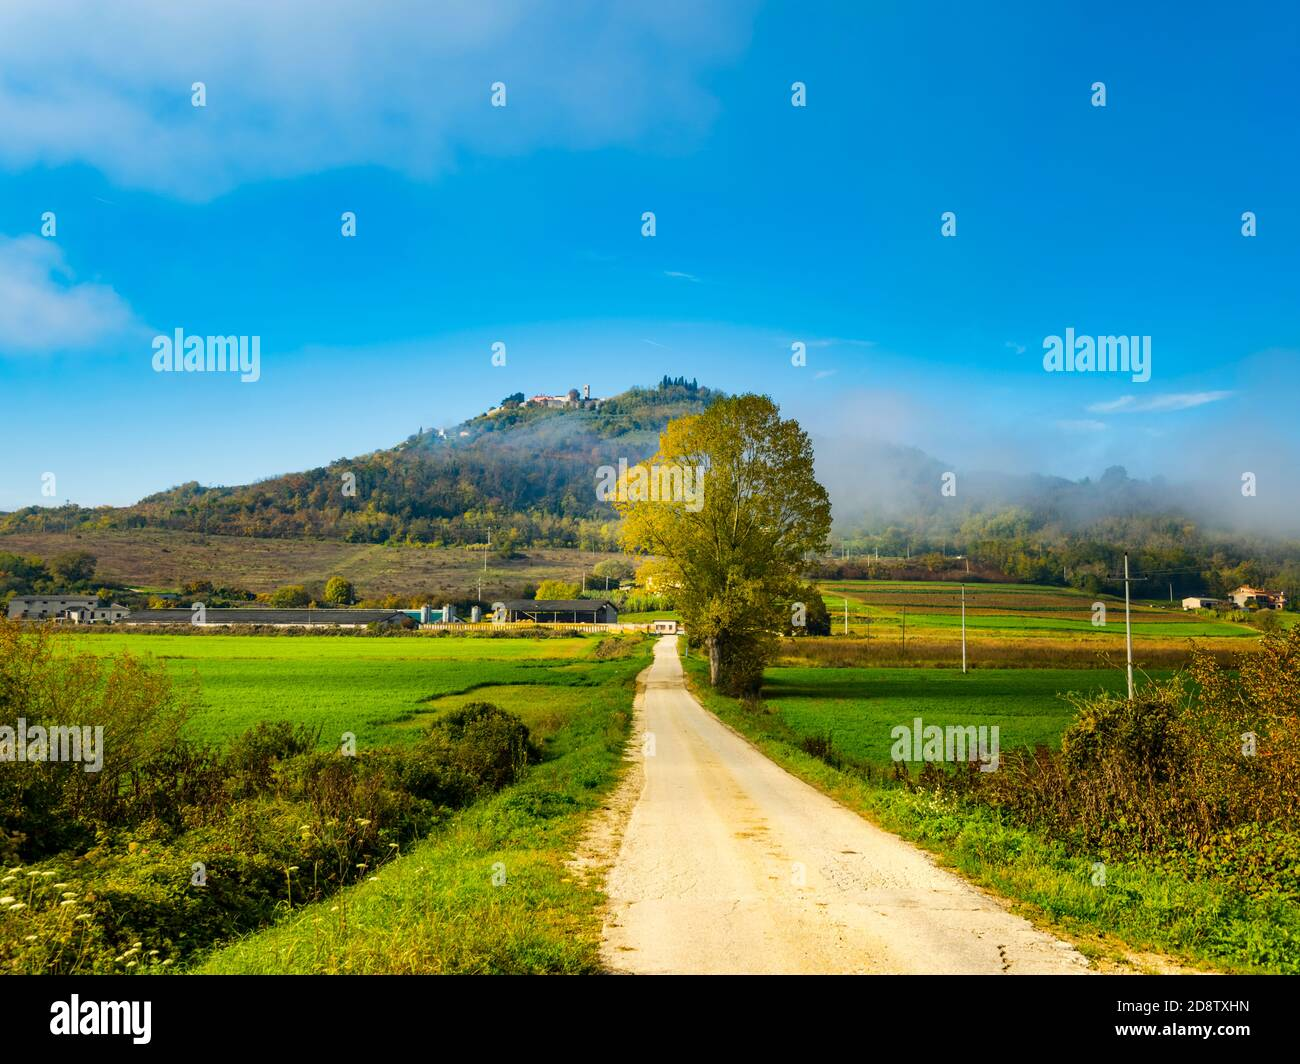 Glorious Motovun in Istria Croatia Europe Stock Photo